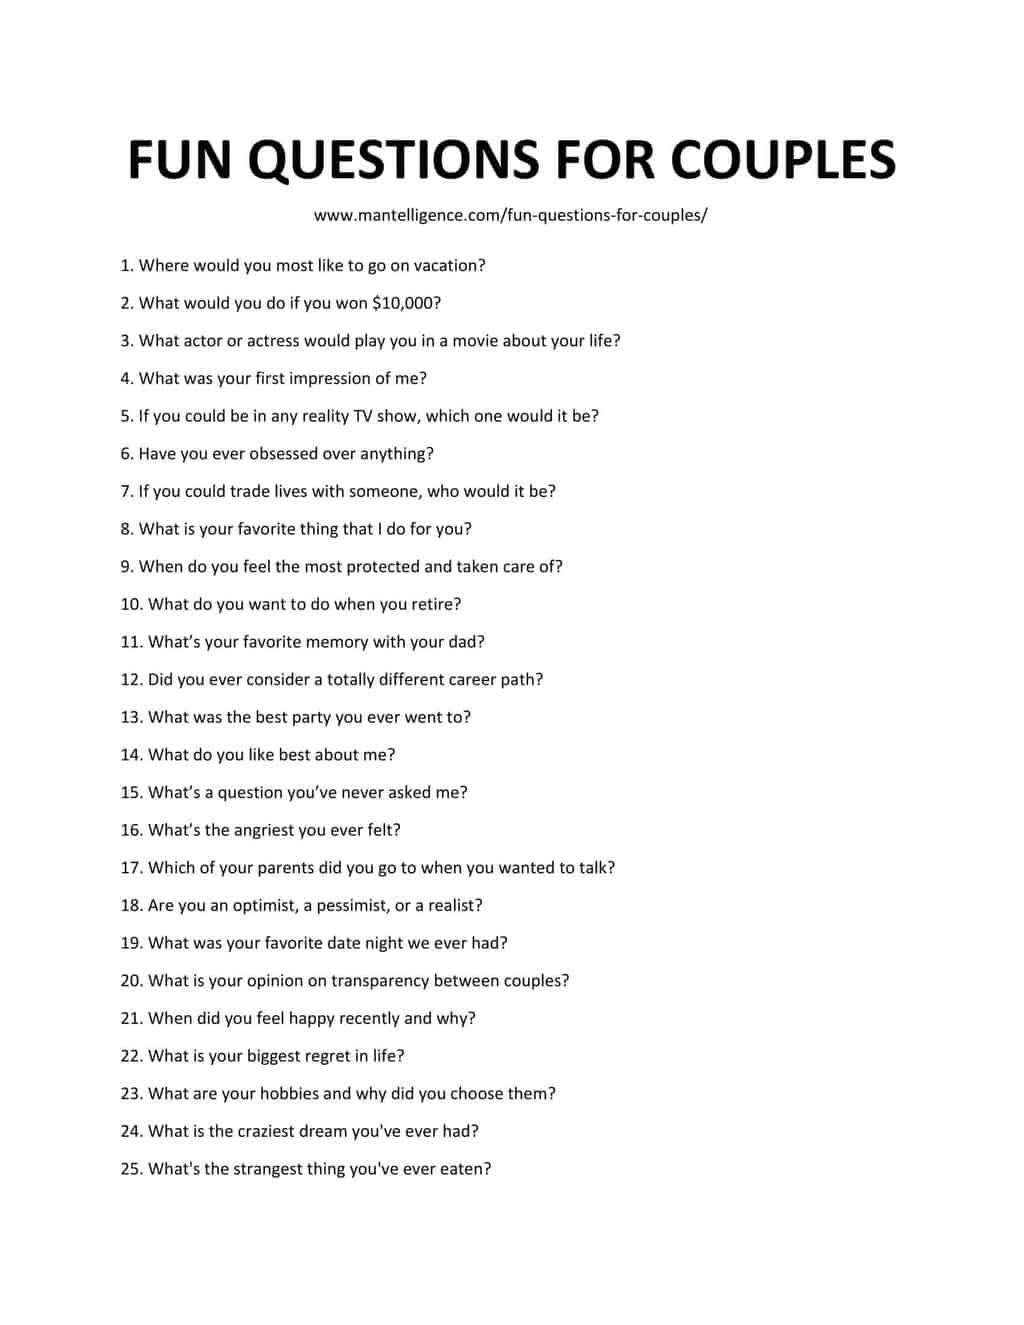 Downloadable and Printable List of Fun Questions for Couples